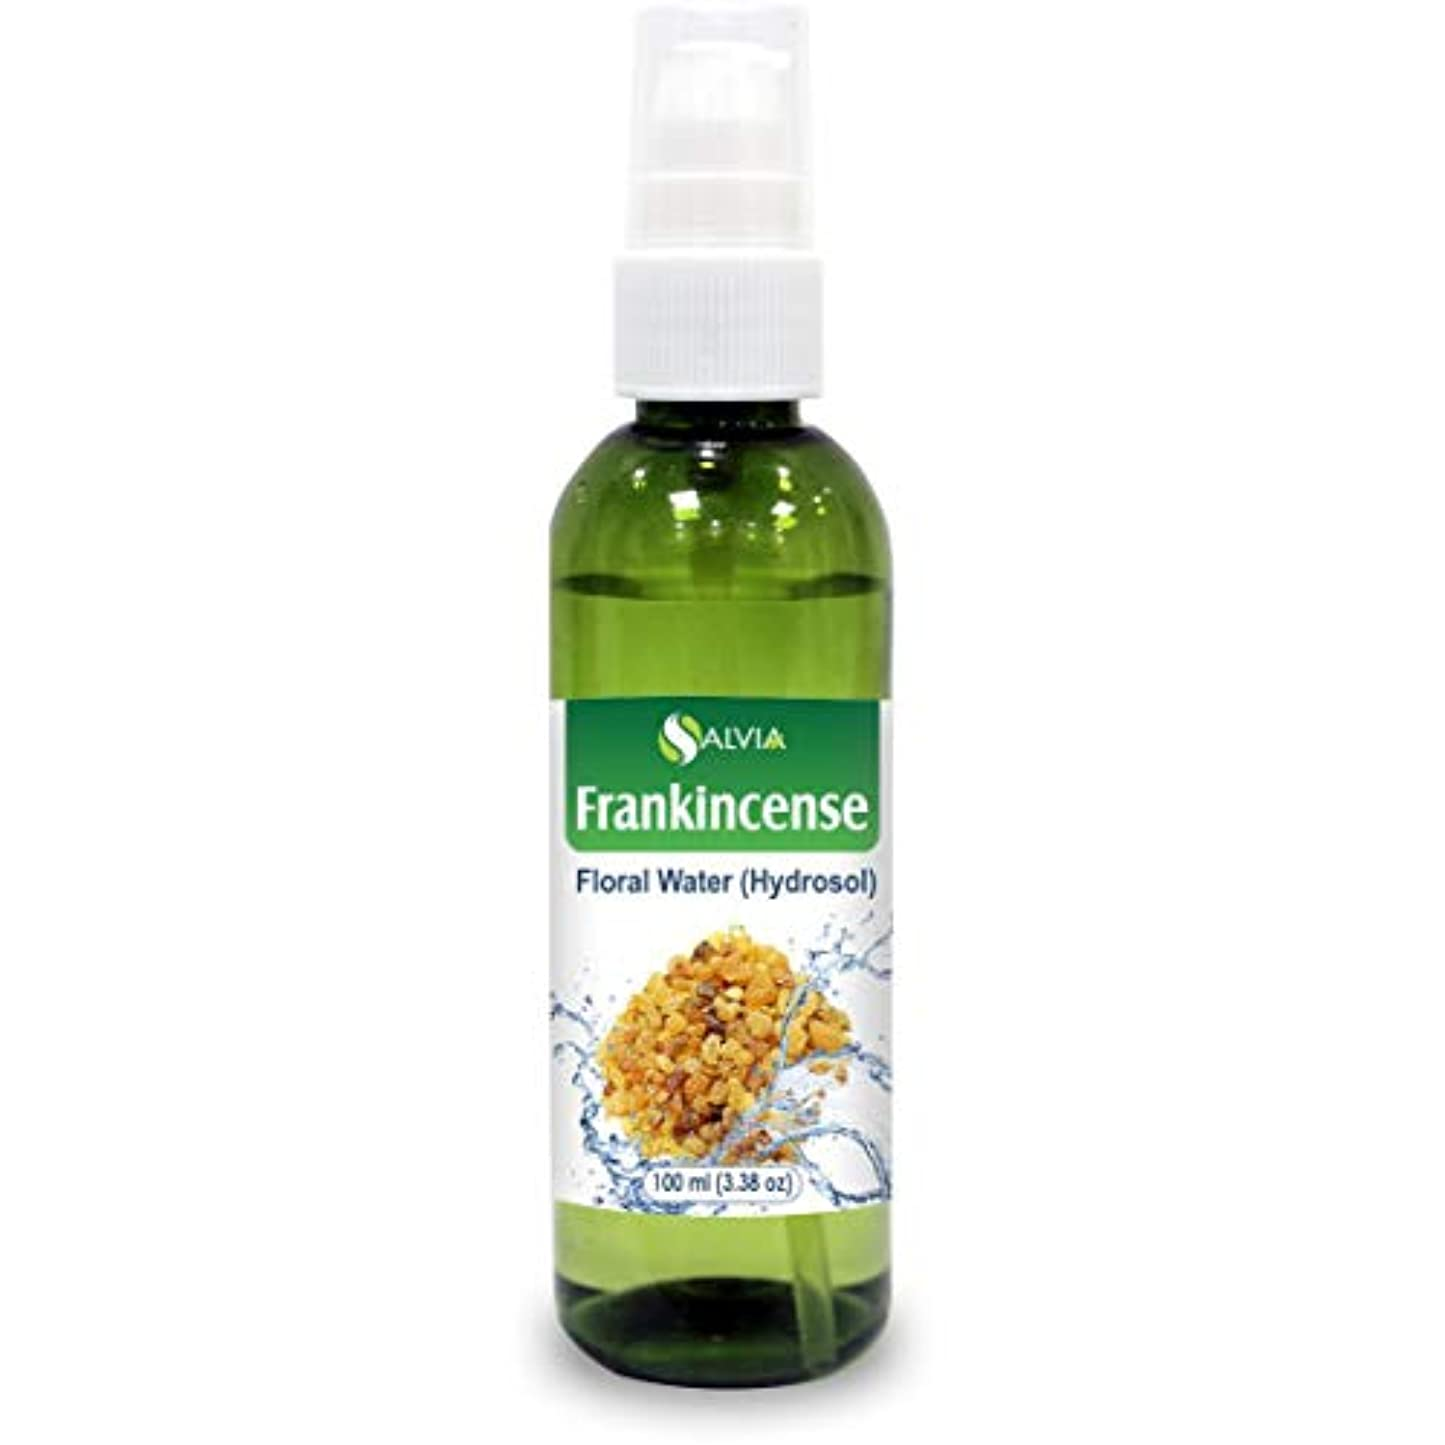 Frankincense Floral Water 100ml (Hydrosol) 100% Pure And Natural